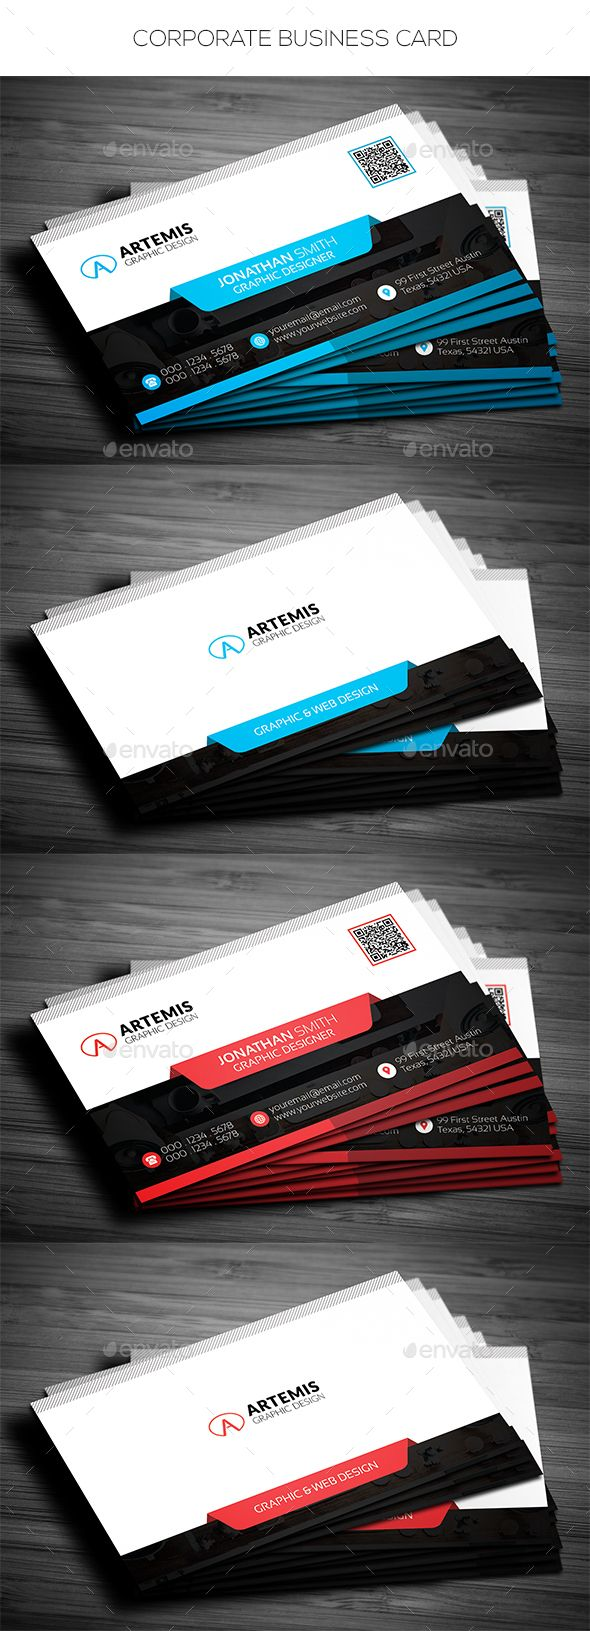 74 best business cards images on pinterest business card design business card design suitable for companies or personal use download here http colourmoves